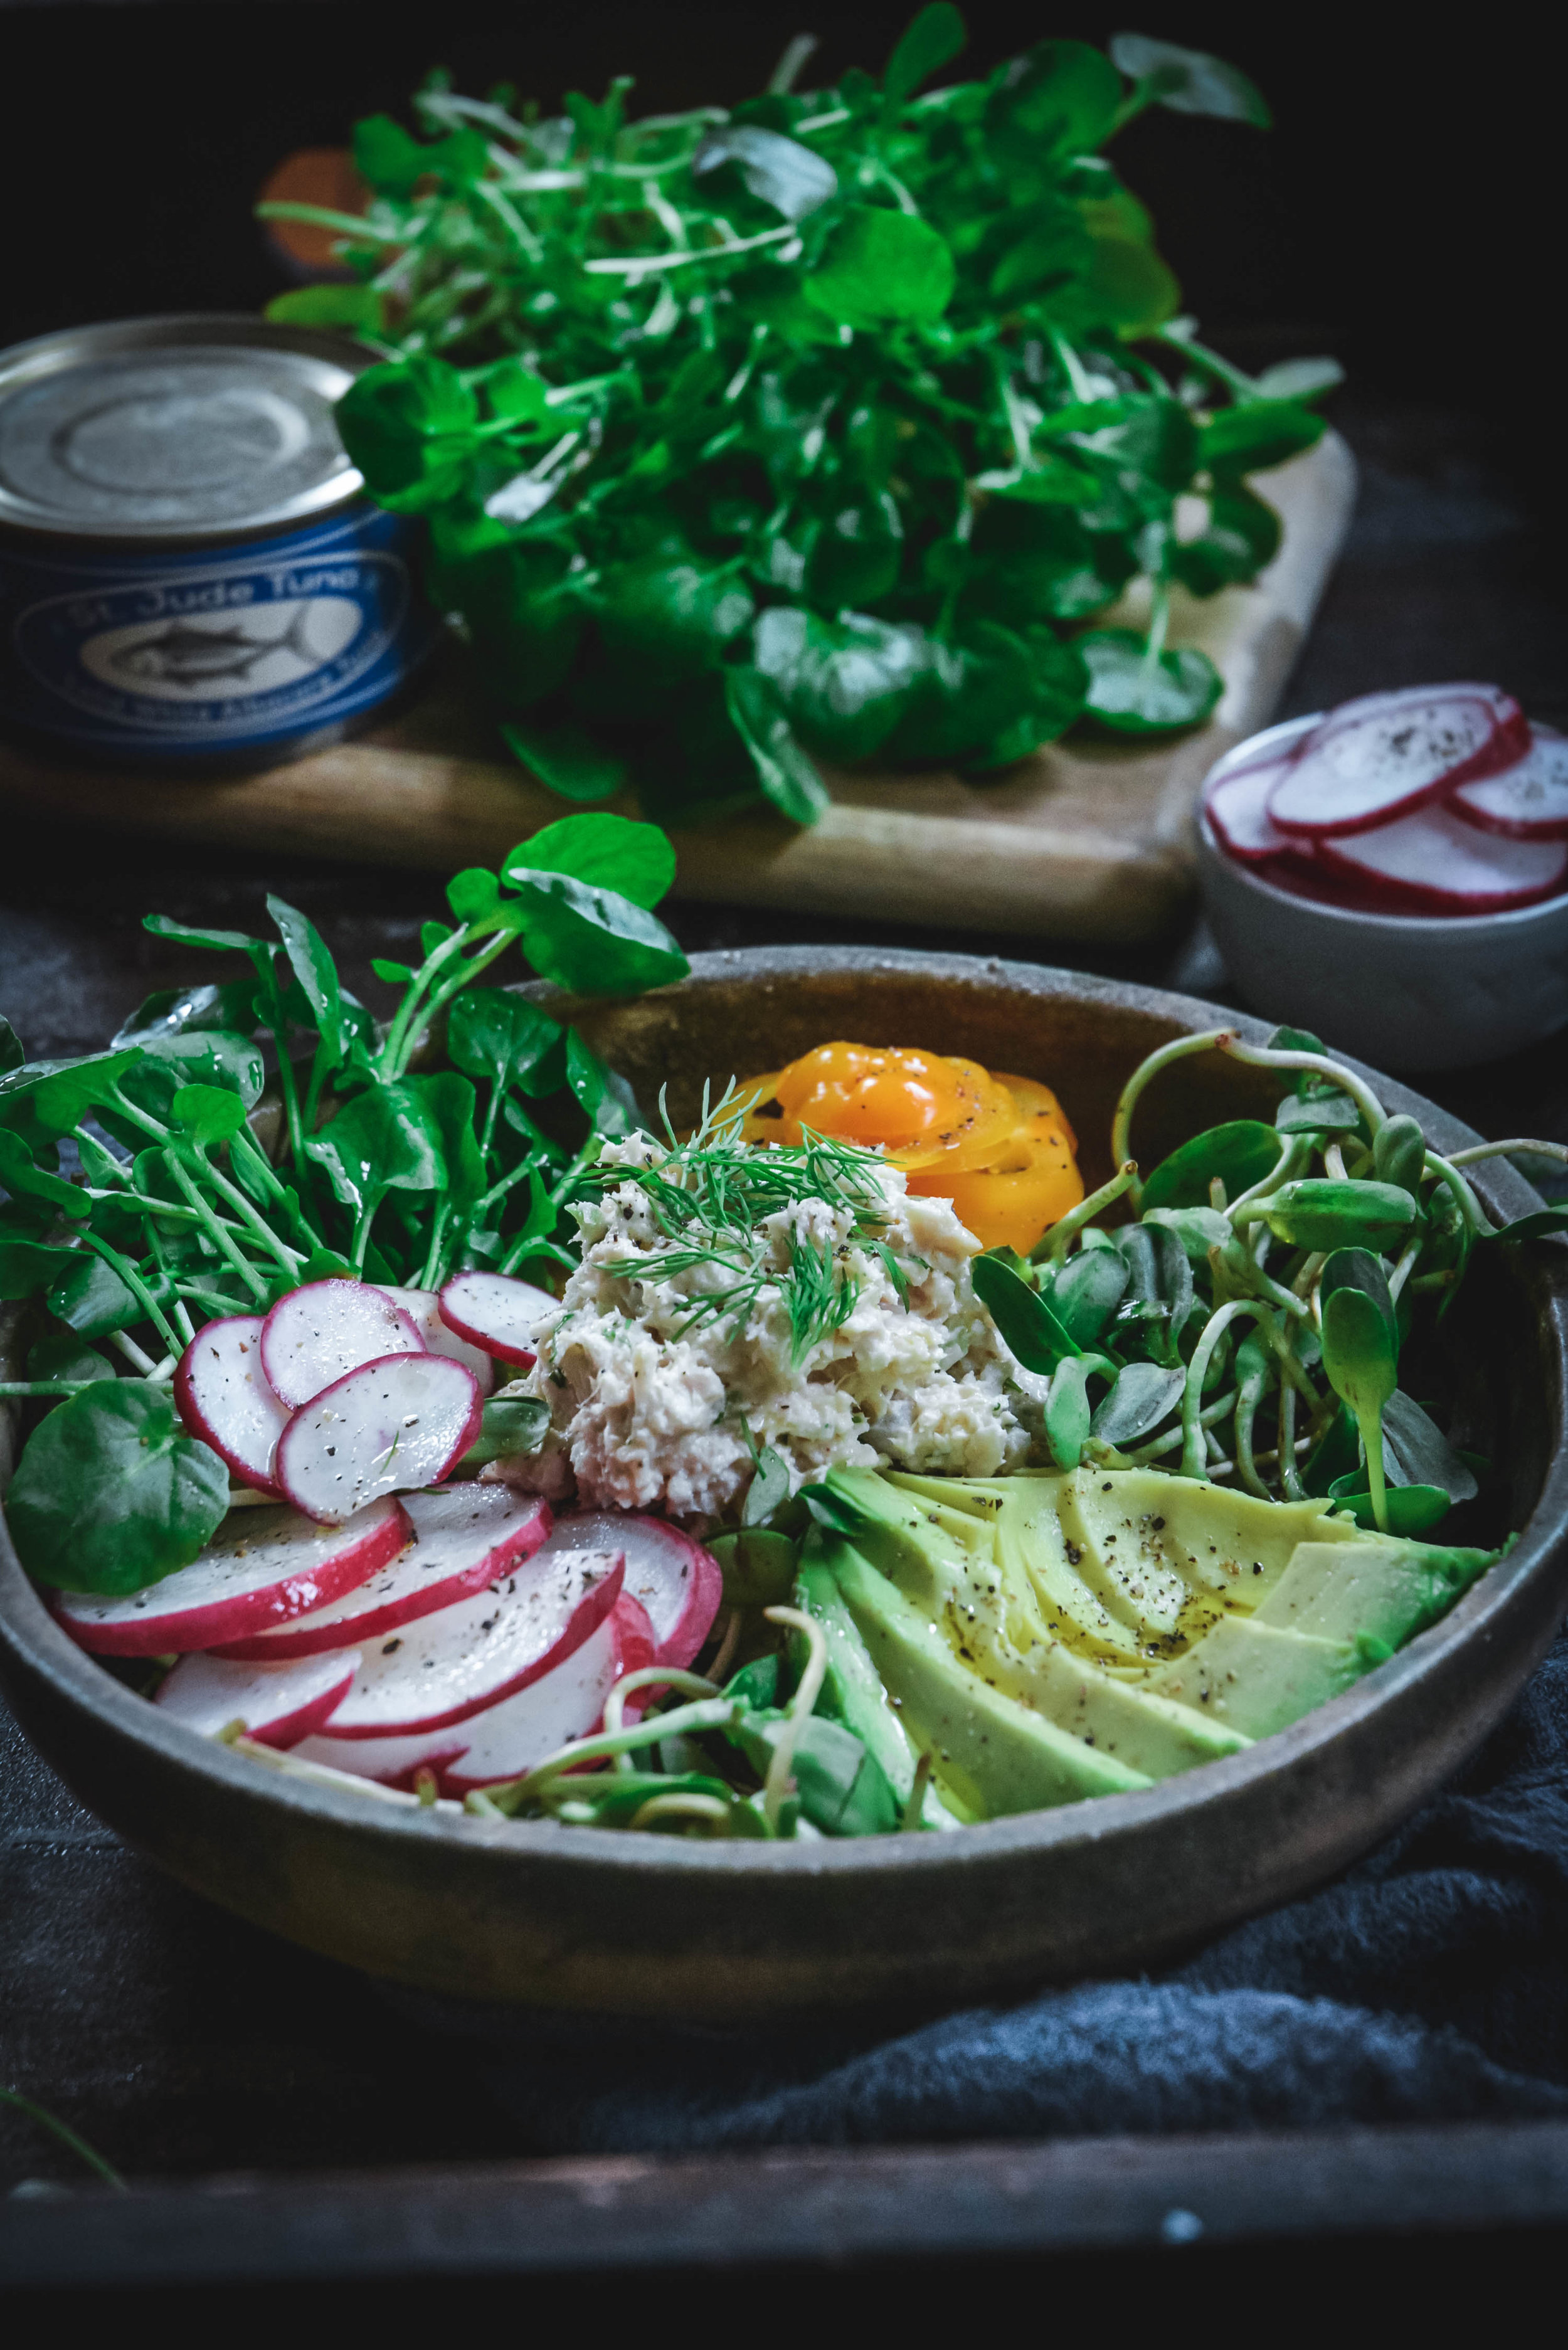 Tuna salad on plate with avocado, orange pepper, greens and sliced radishes and a can of St. Jude Tuna